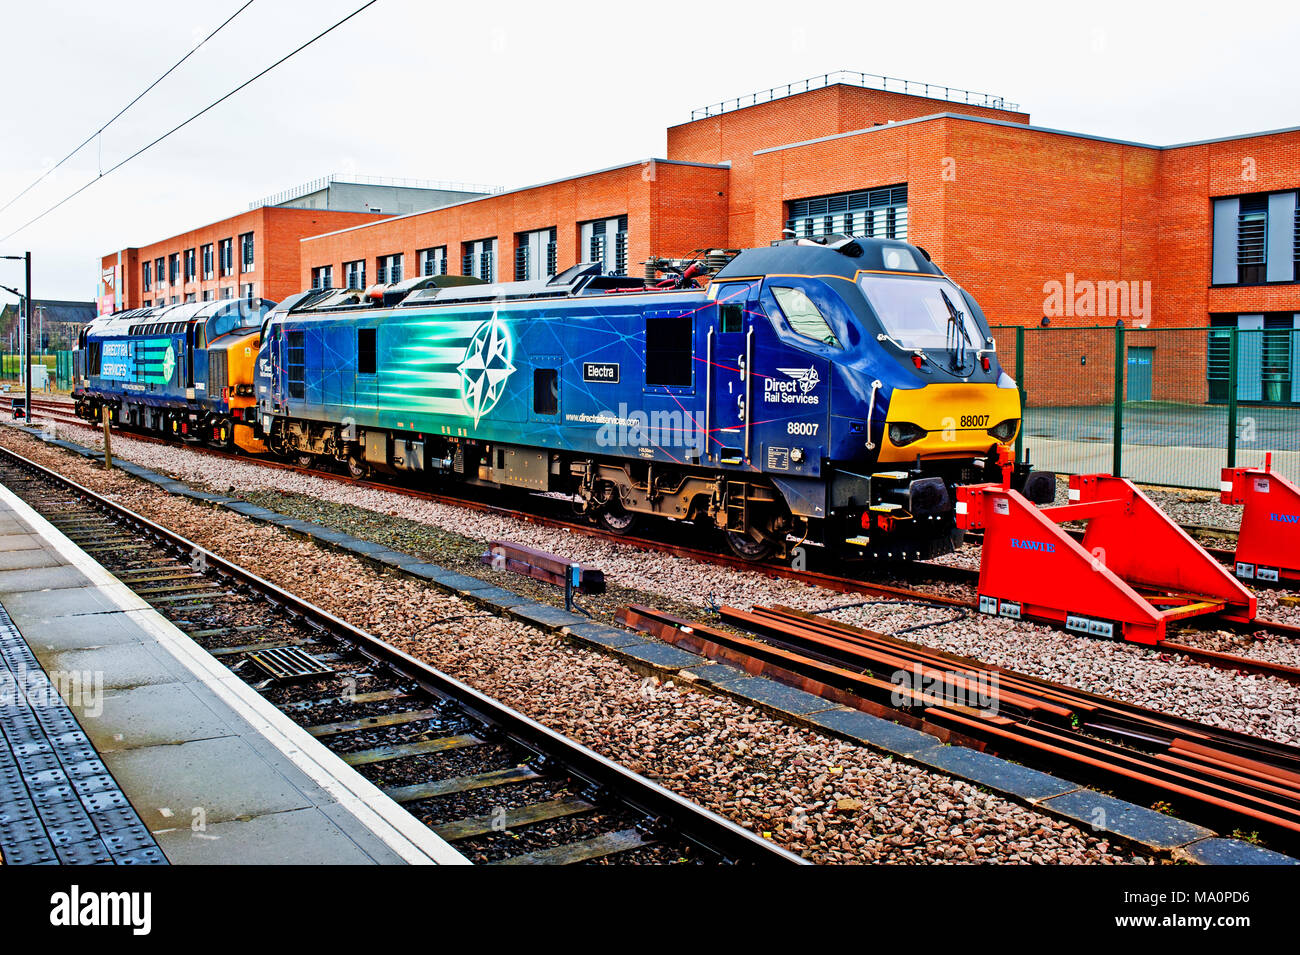 Direct Rail Services Locomotives stabled at York Station York - Stock Image